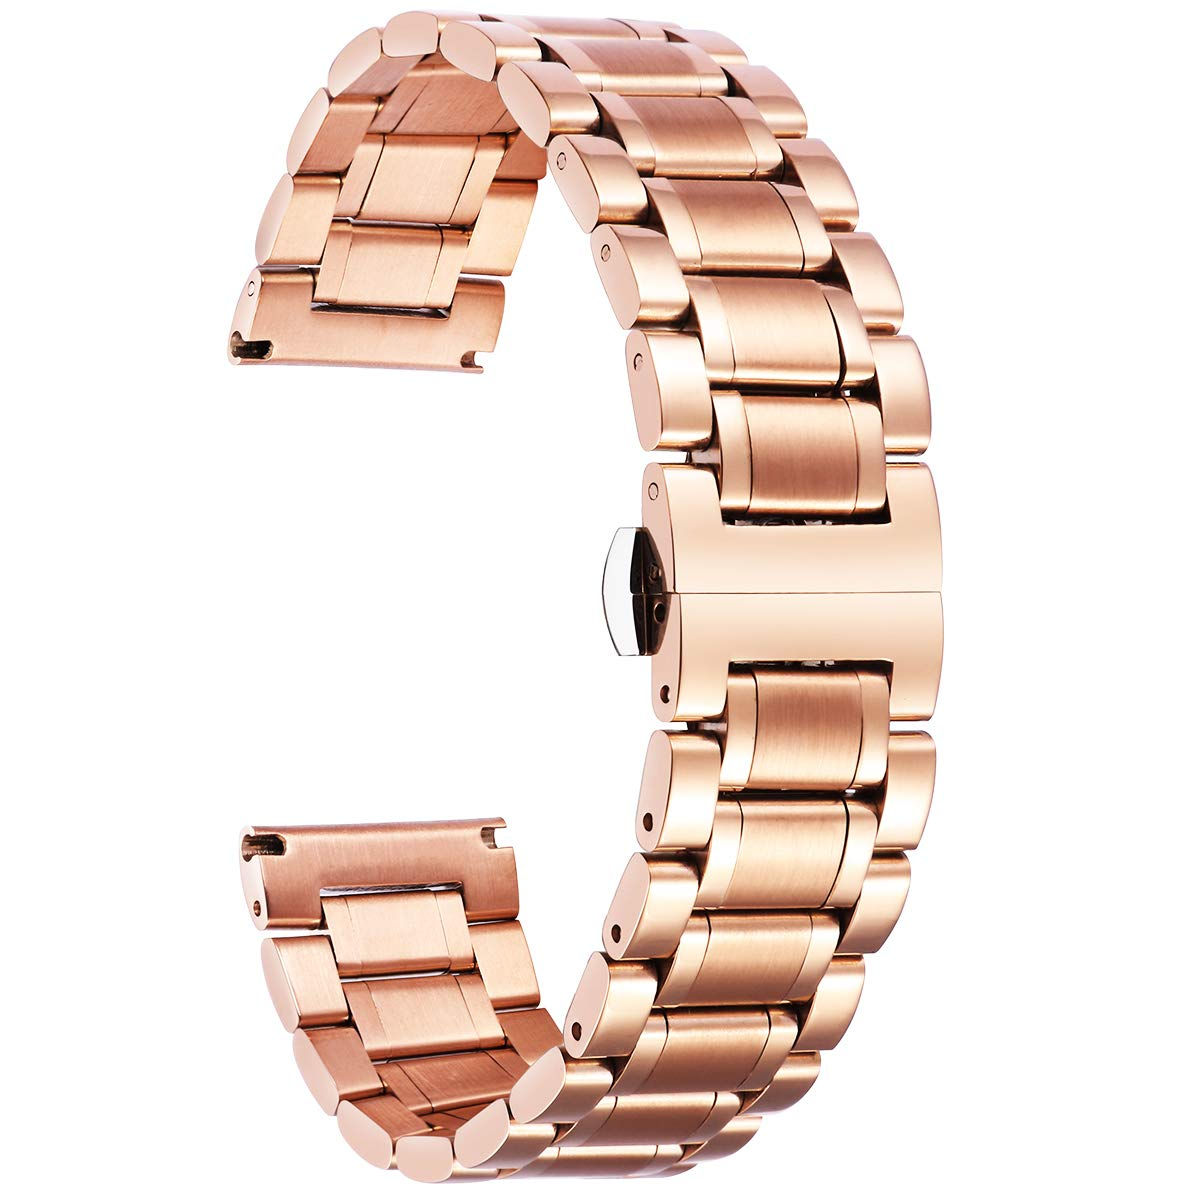 BINLUN Stainless Steel Watch Bands Replacement with Straight & Curved End Quick Release 6 Colors(Gold Sliver Black Rose Gold Gold-Silver Two Tone Silver-Rose Gold) 9 Sizes(12mm-24mm)